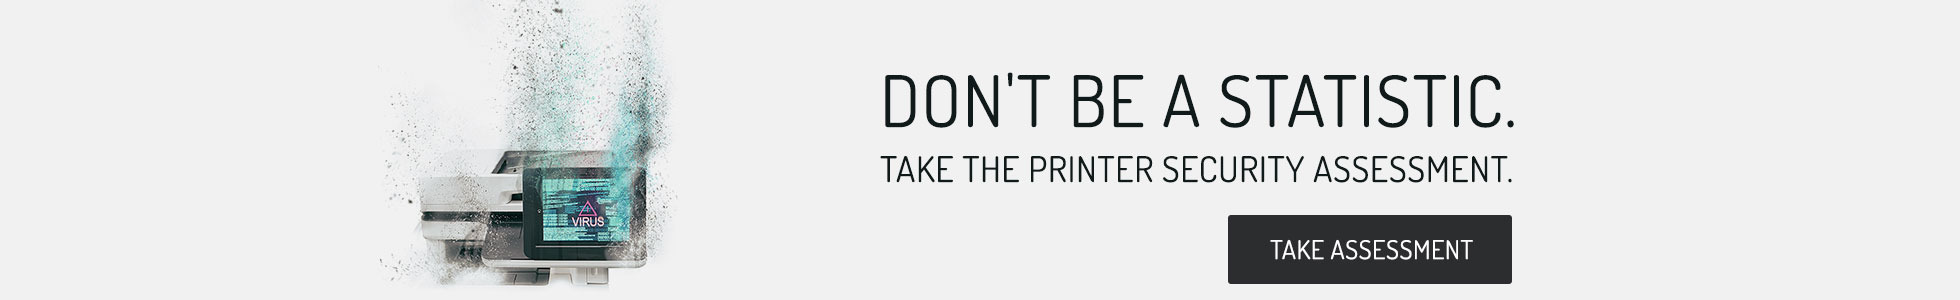 Printer Security Assessment